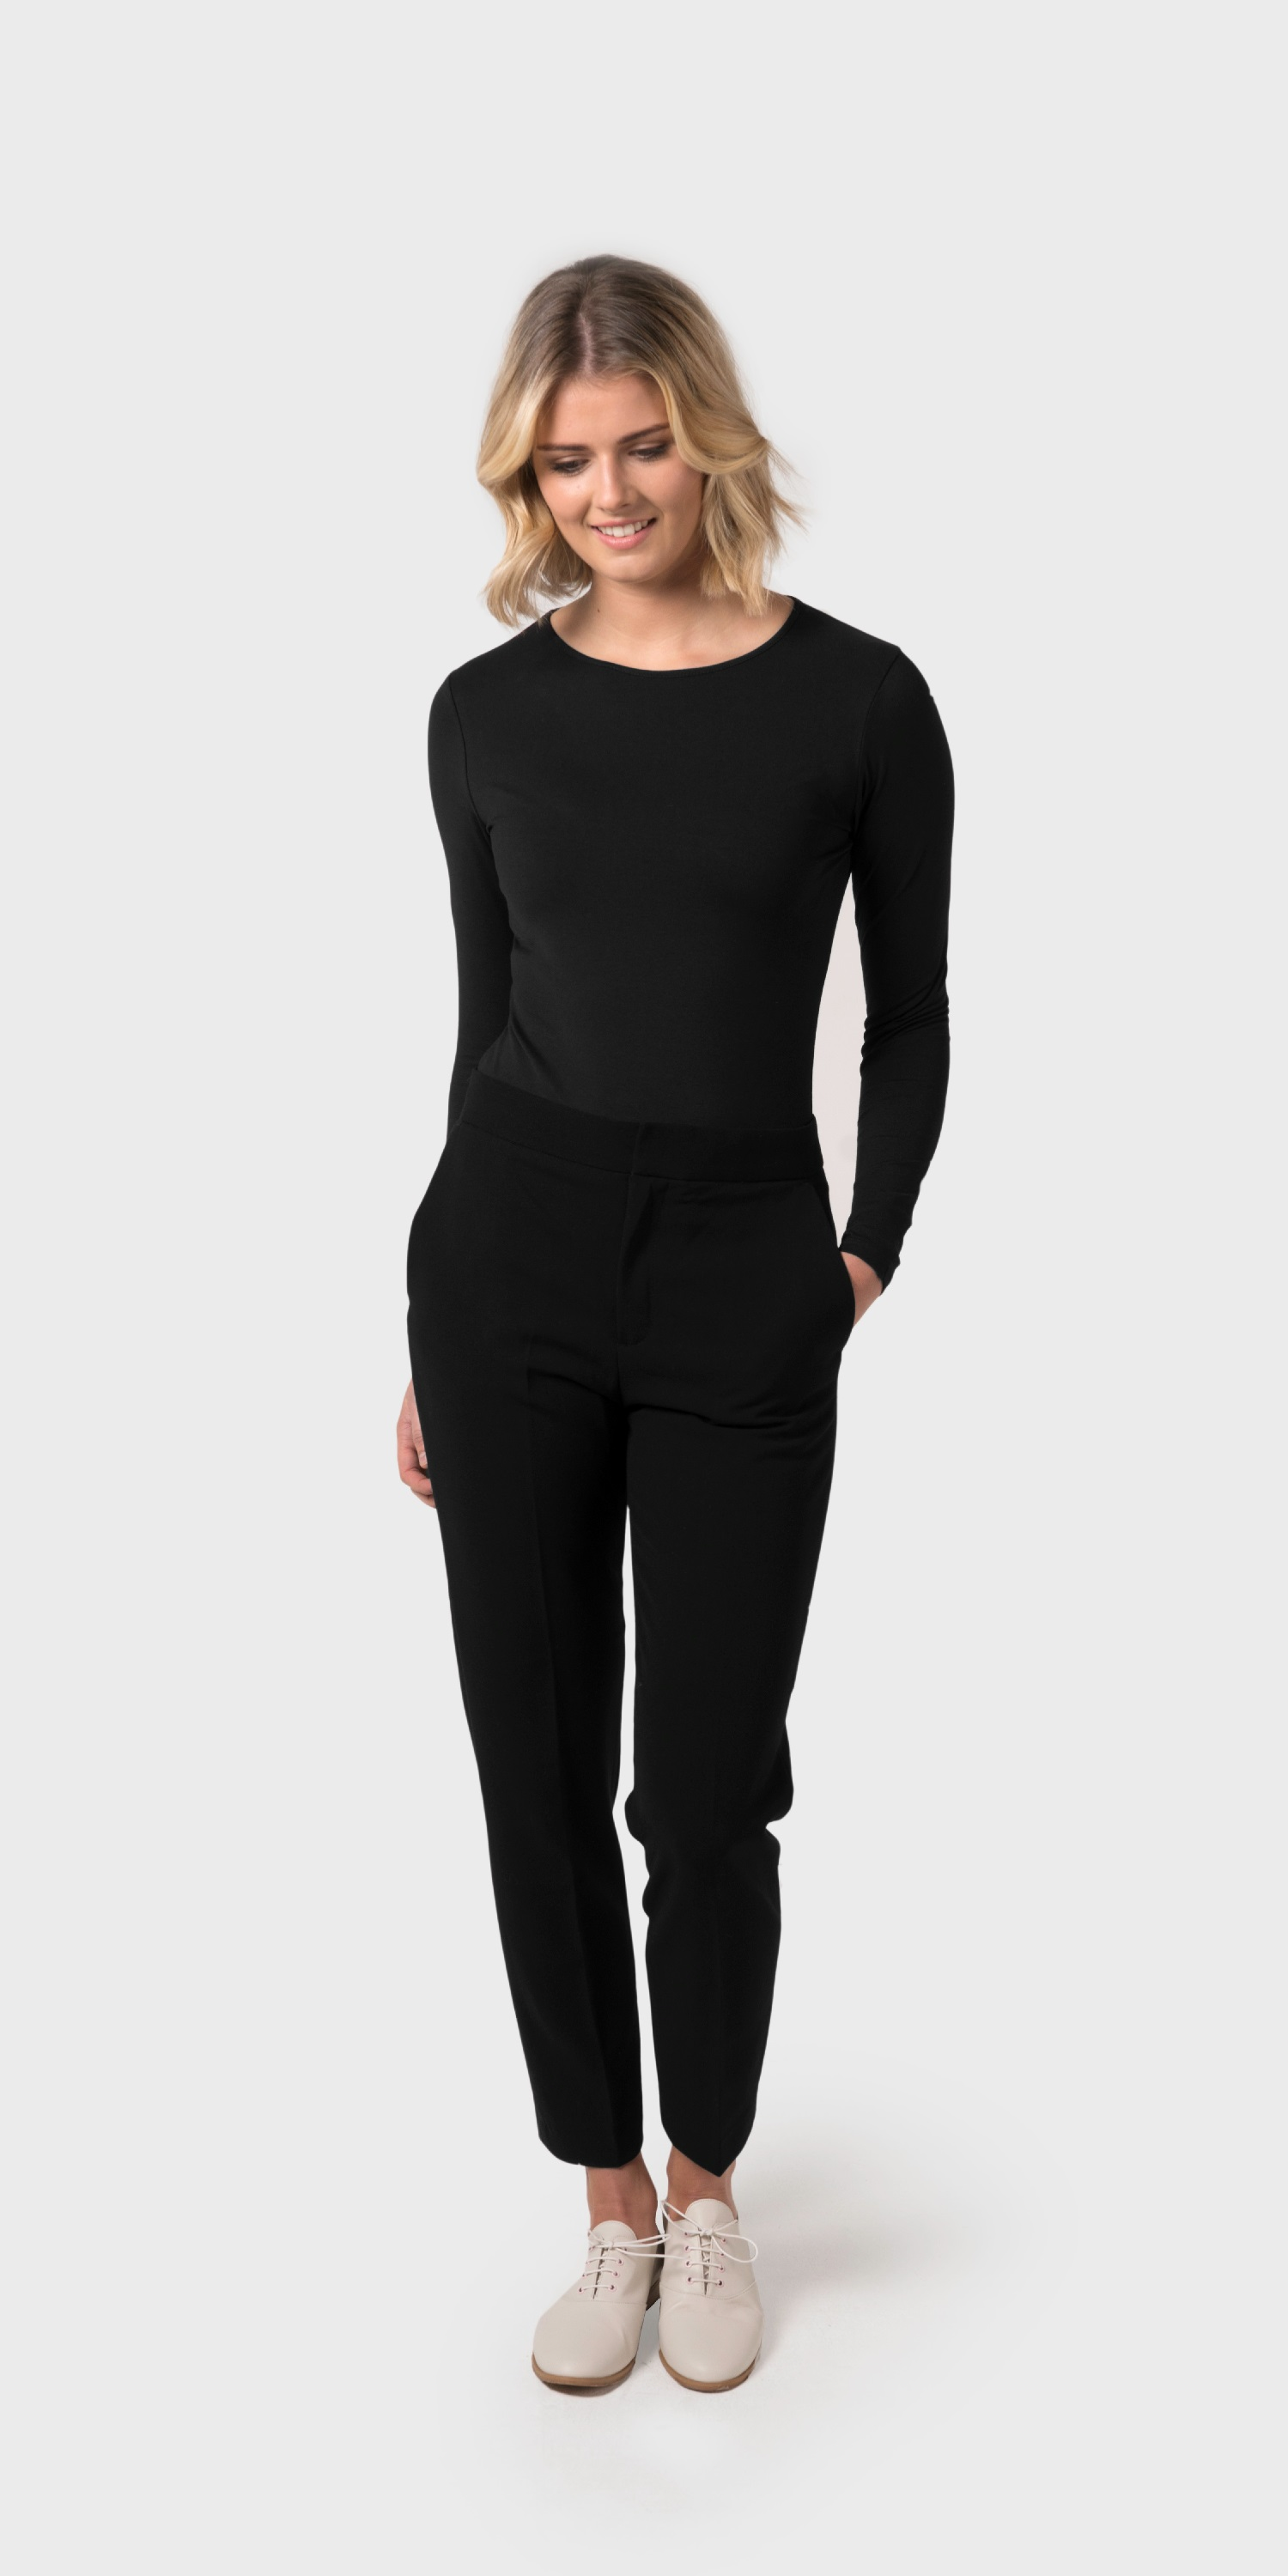 Women's black organic cotton body